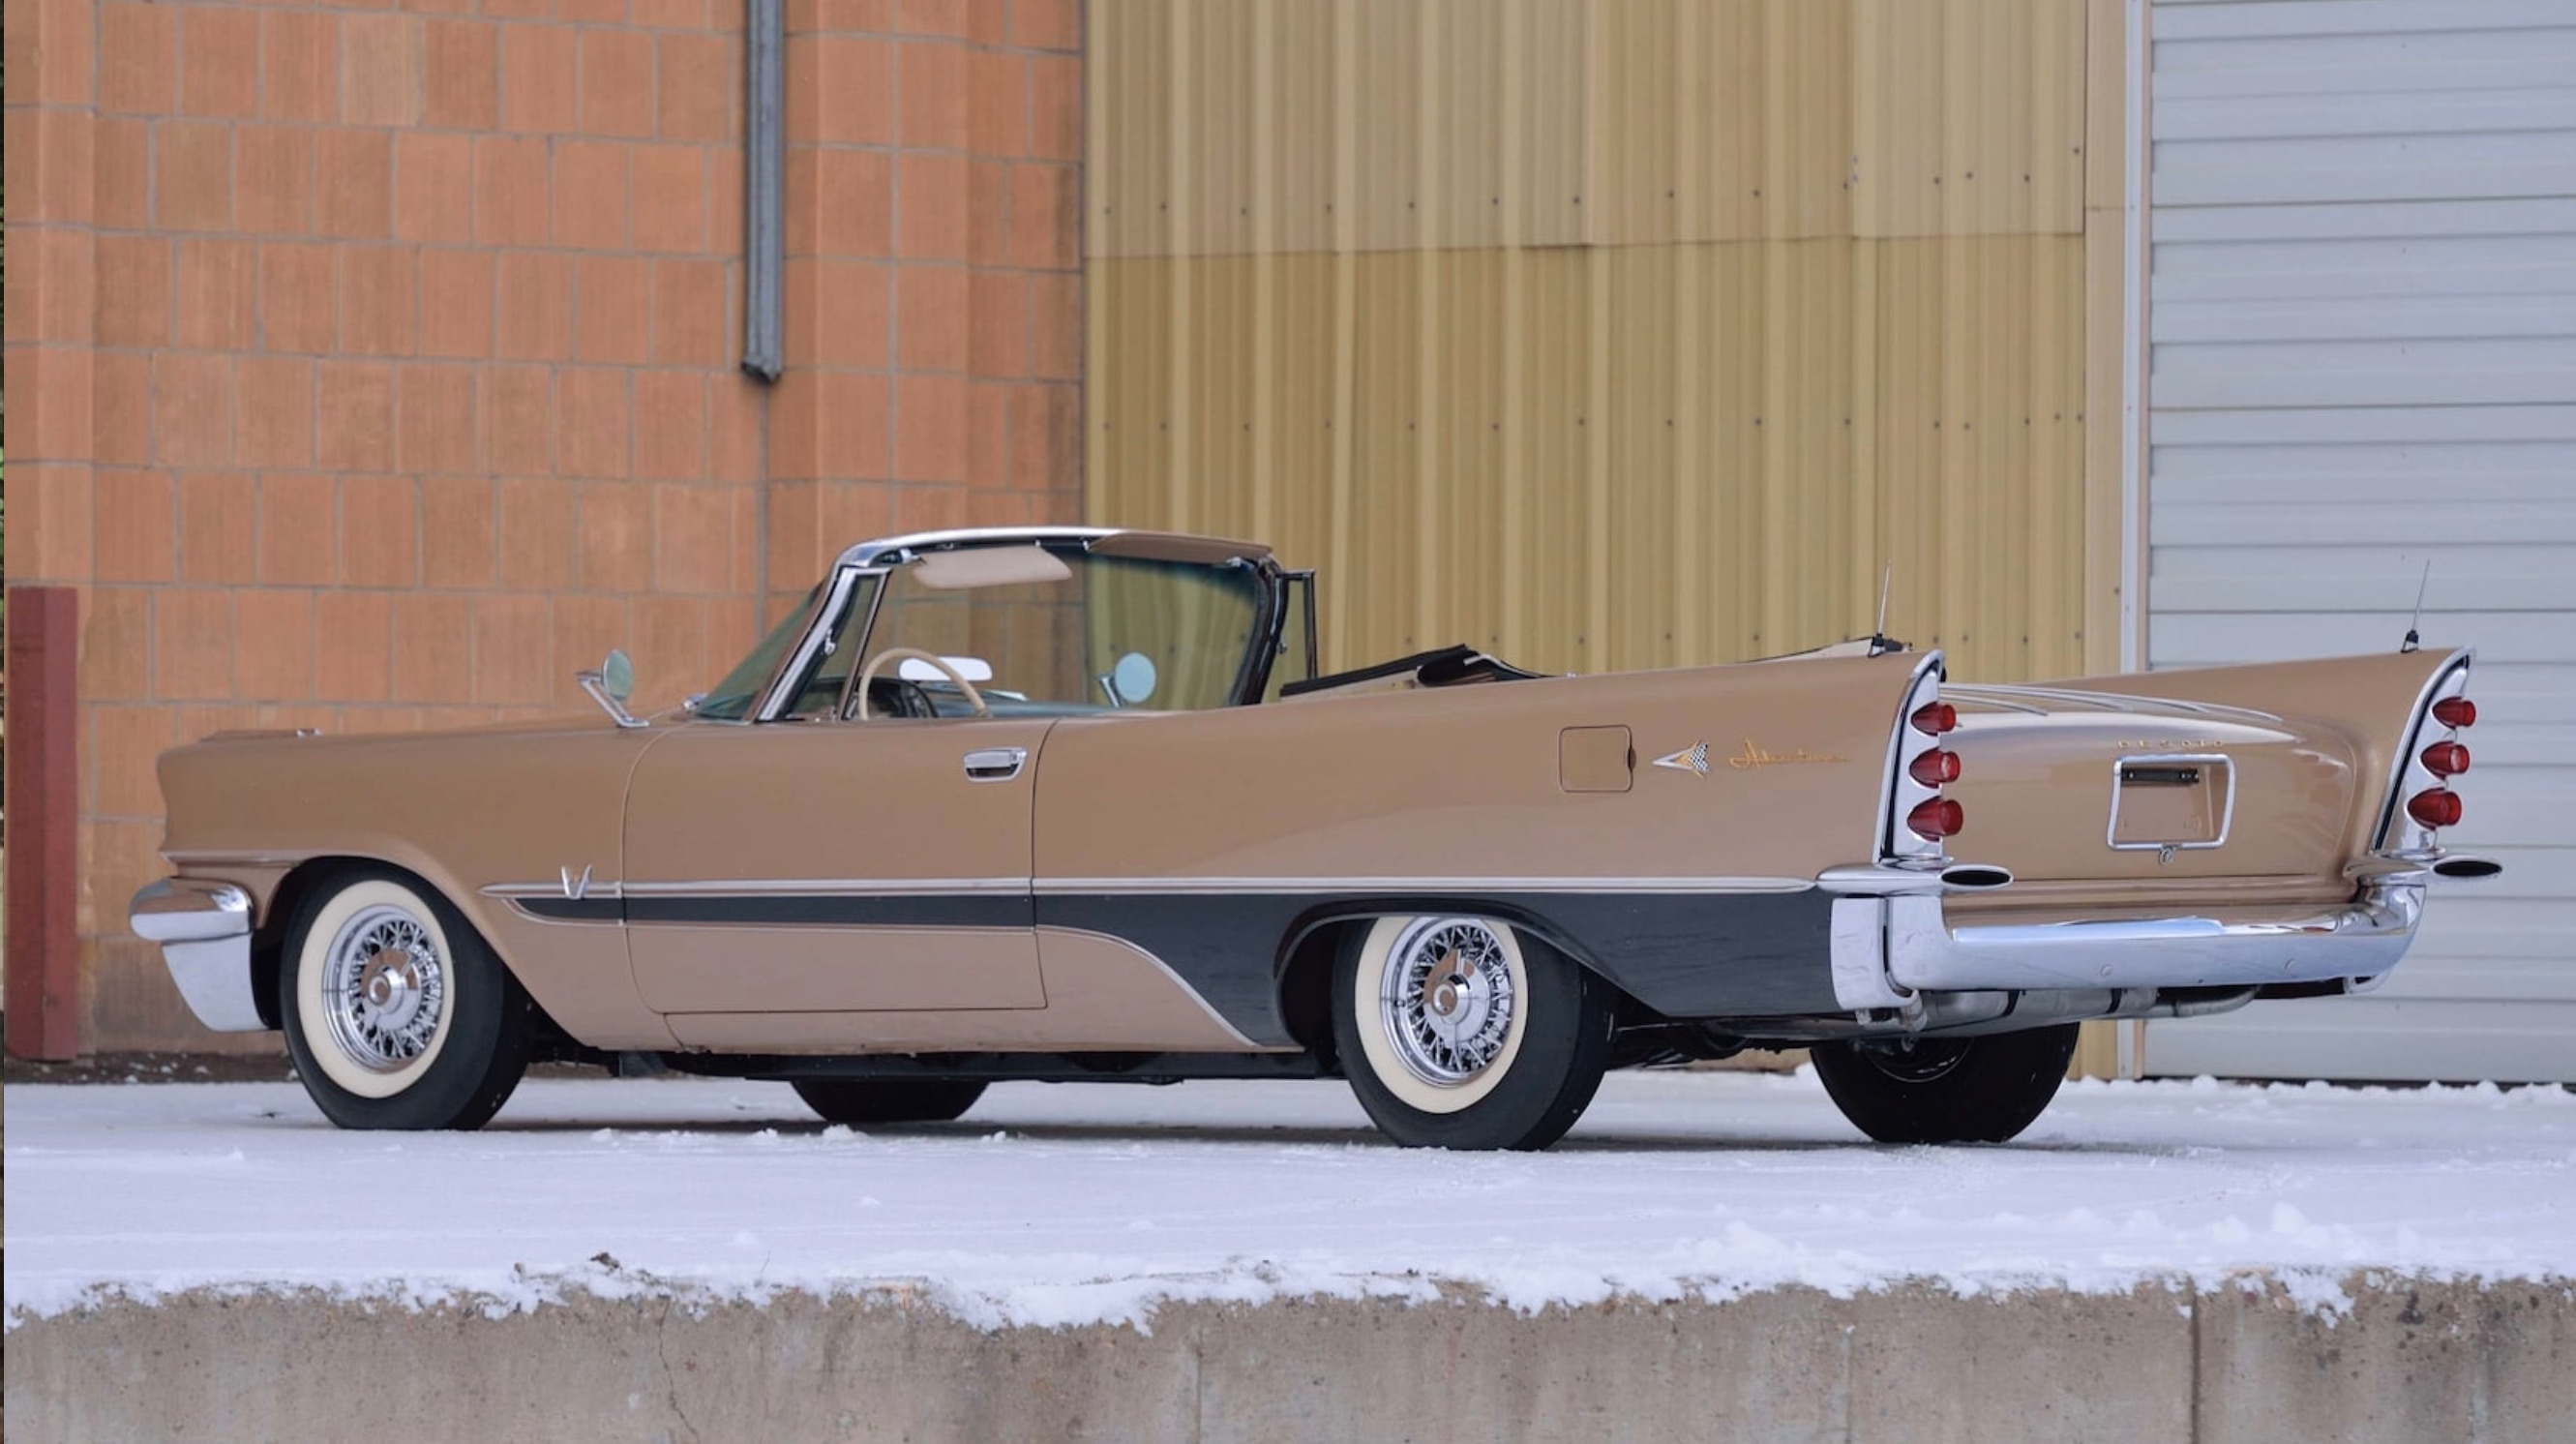 BangShift Question Of The Day: What Is The Most Iconic Fin Car Of The 1950s?